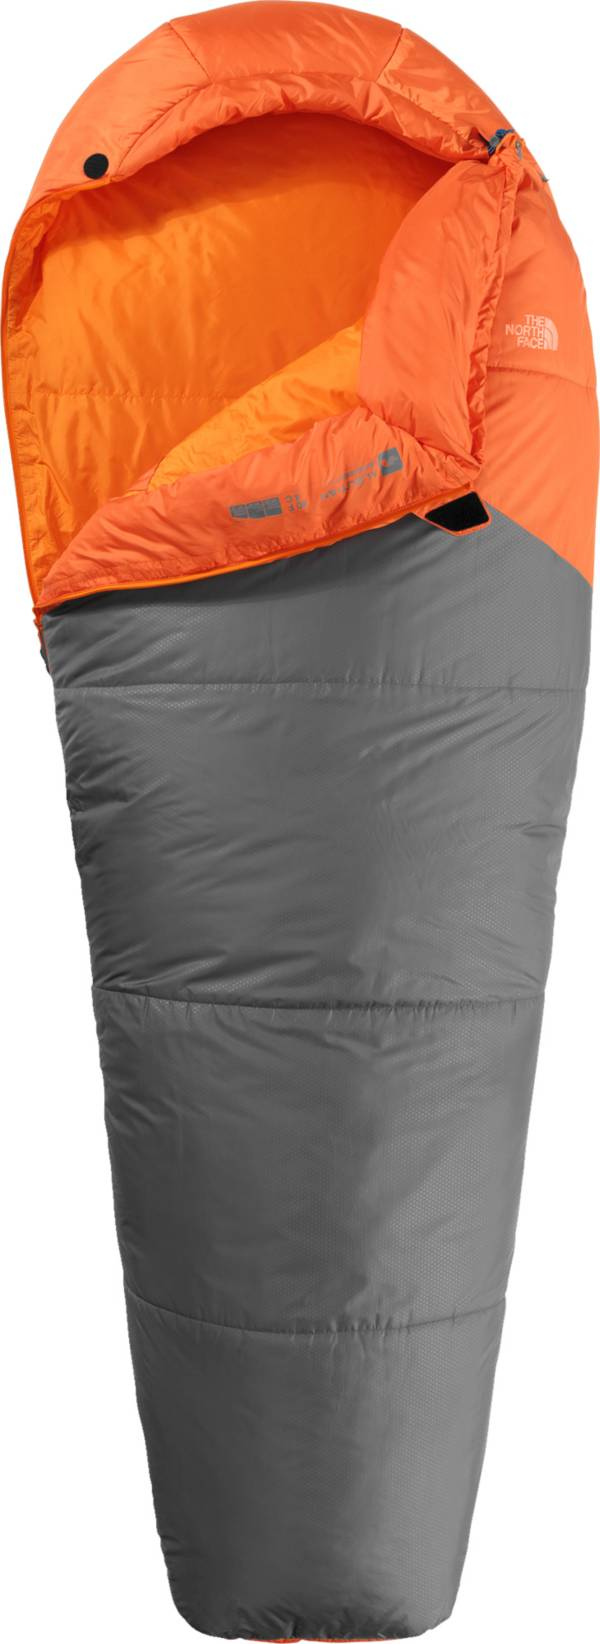 The North Face Aleutian 40° Sleeping Bag product image